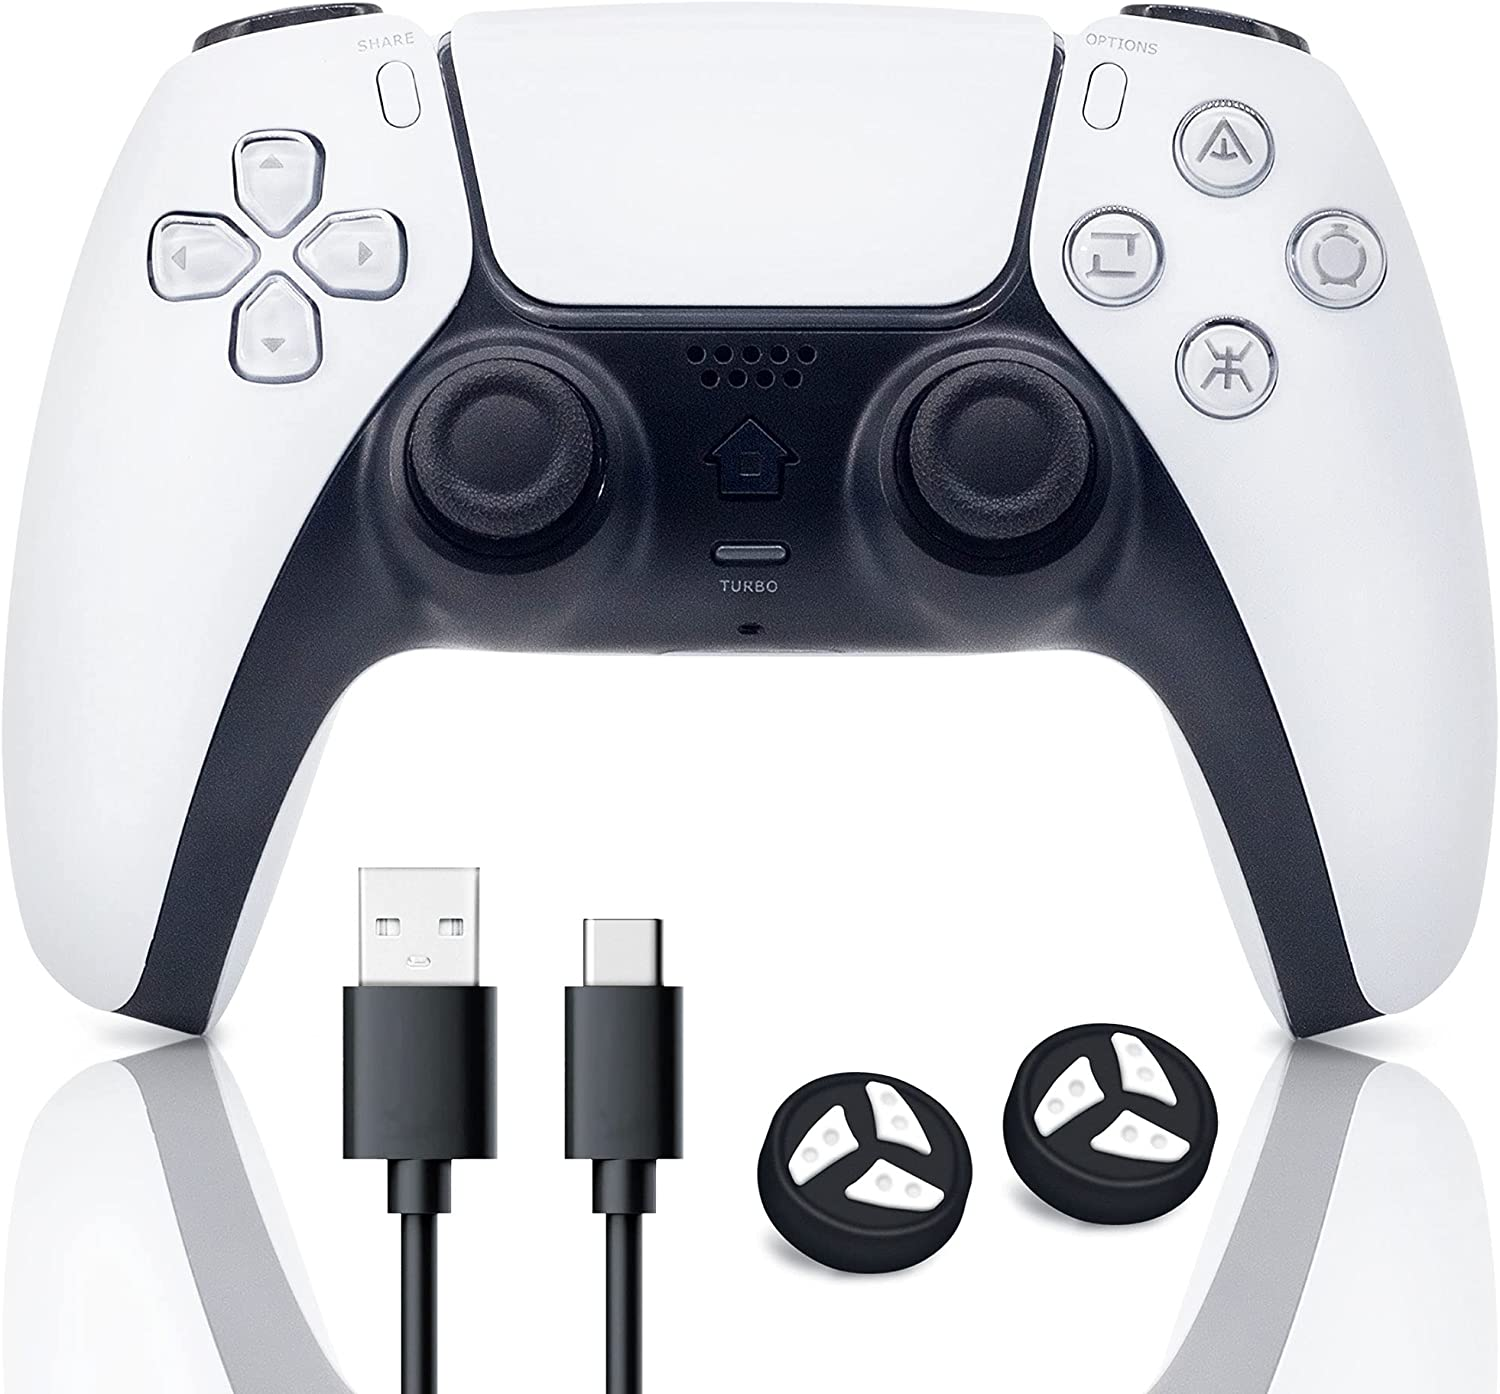 Wireless Controller for PS-4 BRHE Replacement Max 51% OFF Remote Gamepad Ga security